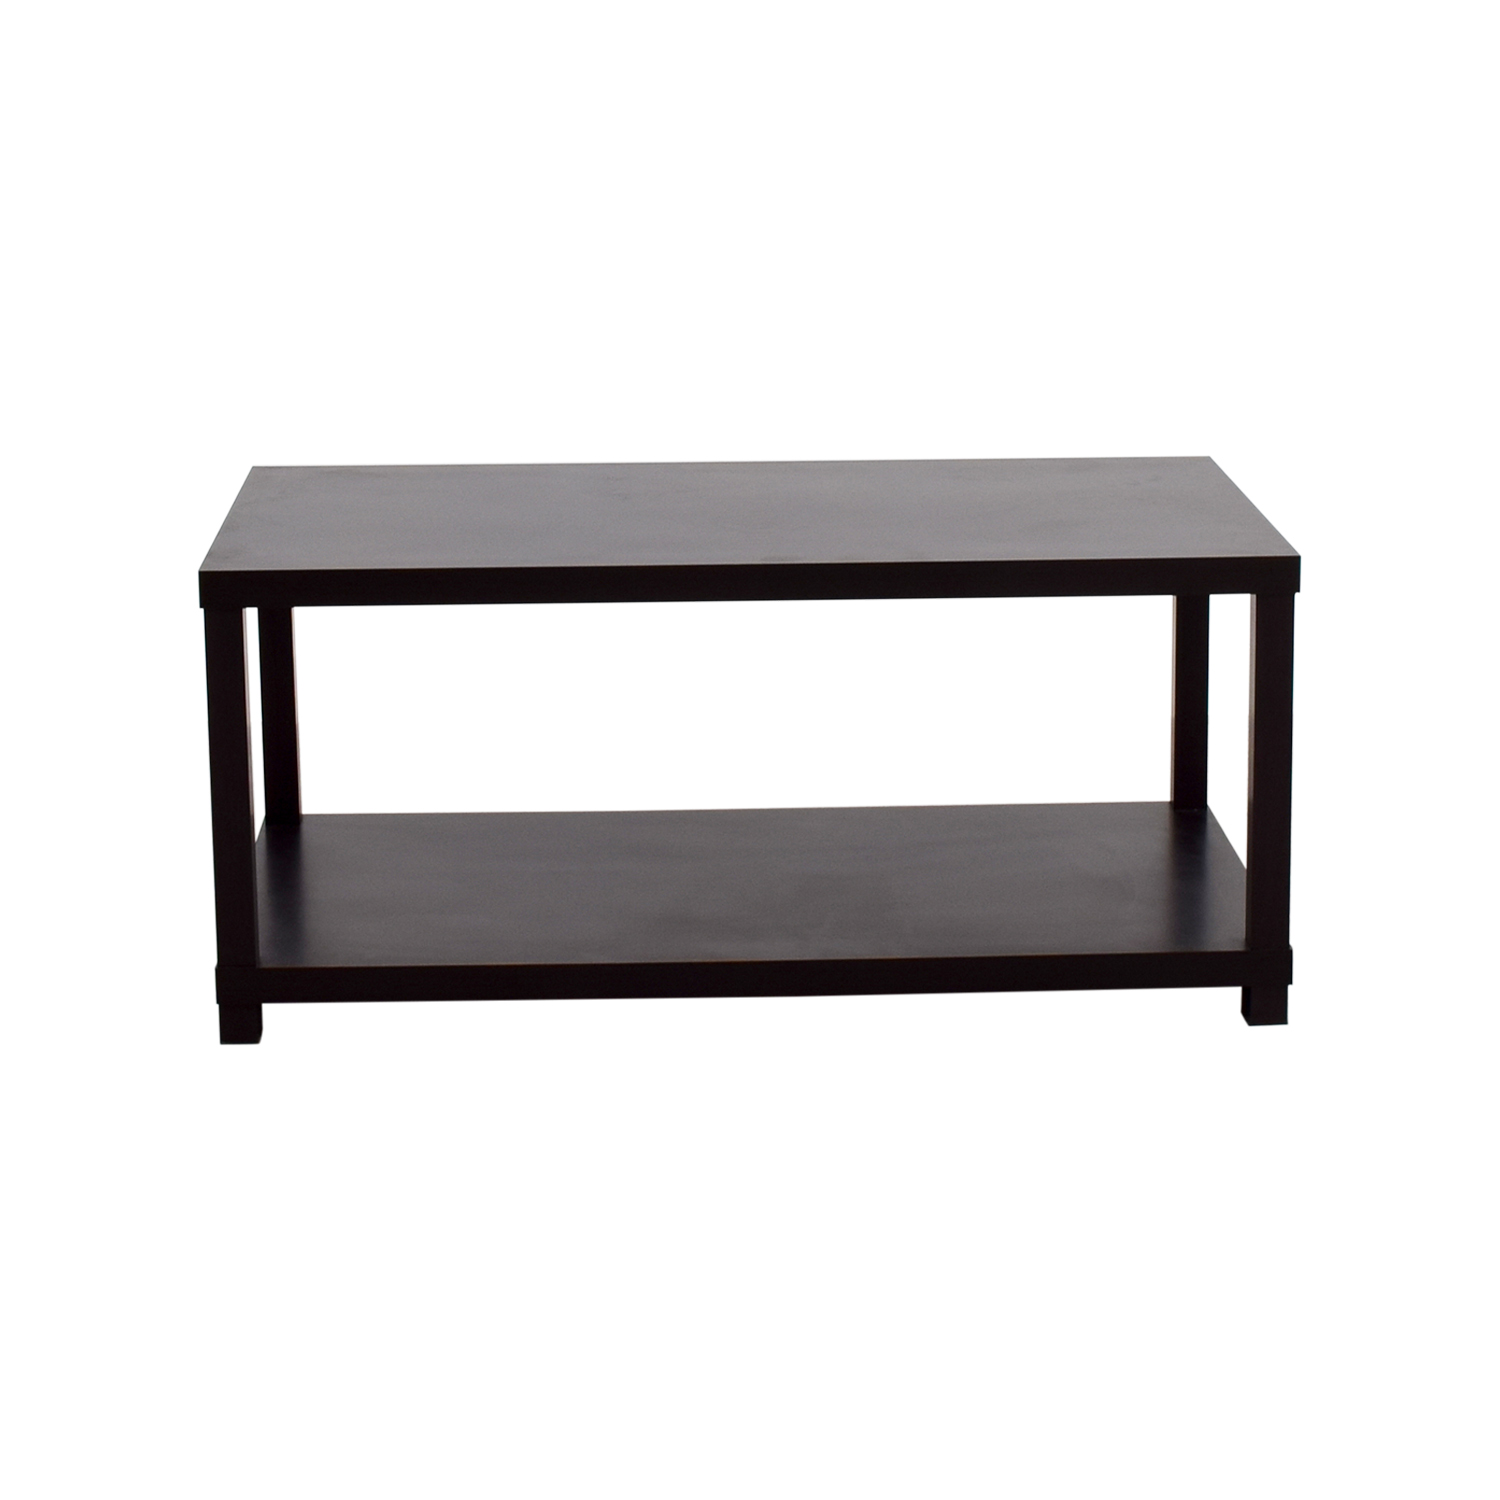 Acme Acme Wood Espresso Coffee Table dimensions